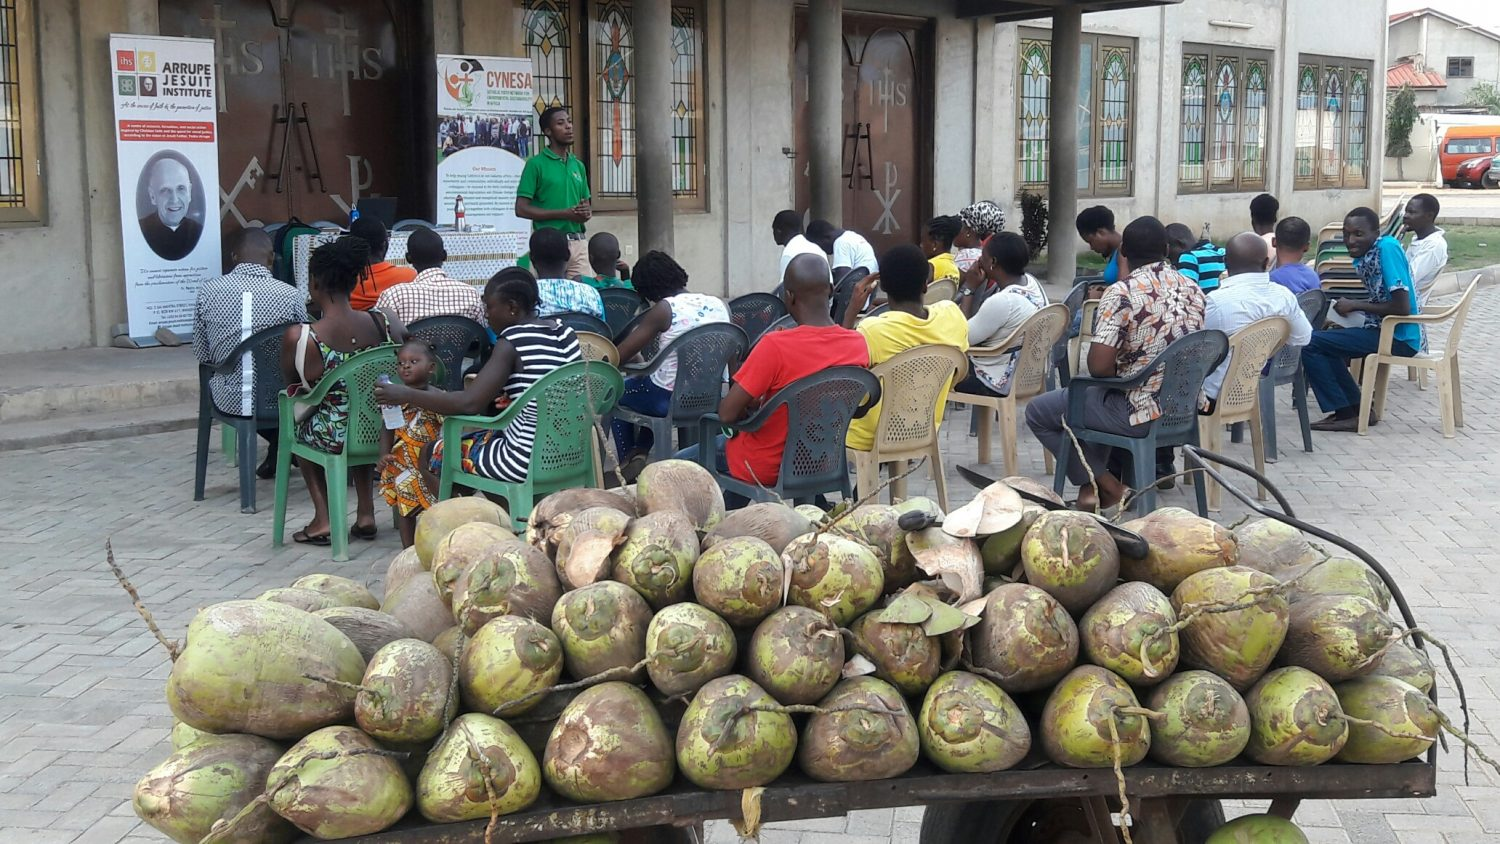 Climate and Coconut in Accra - CYNESA and Arrupe Jesuit Institute